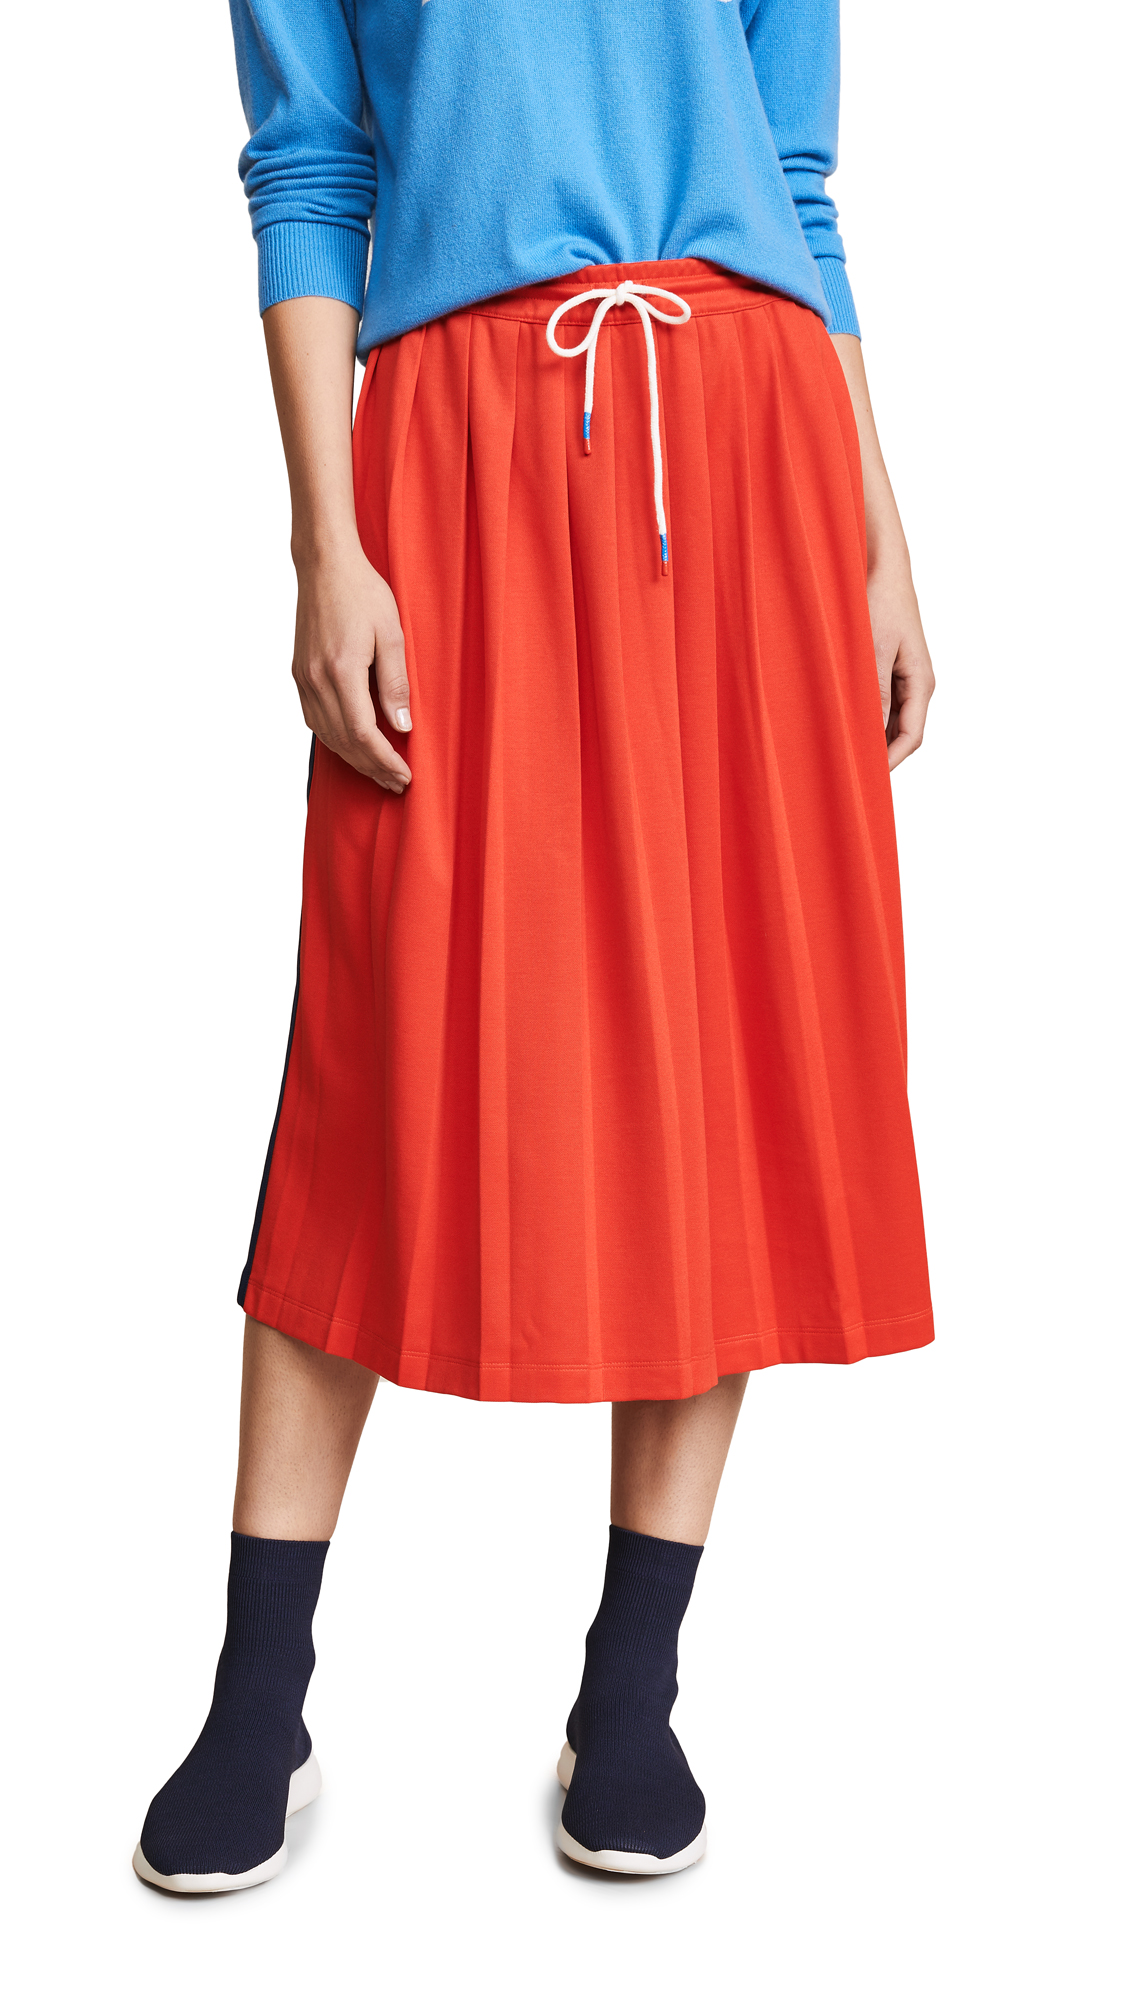 Tory Sport Double Stripe Track Skirt In Red